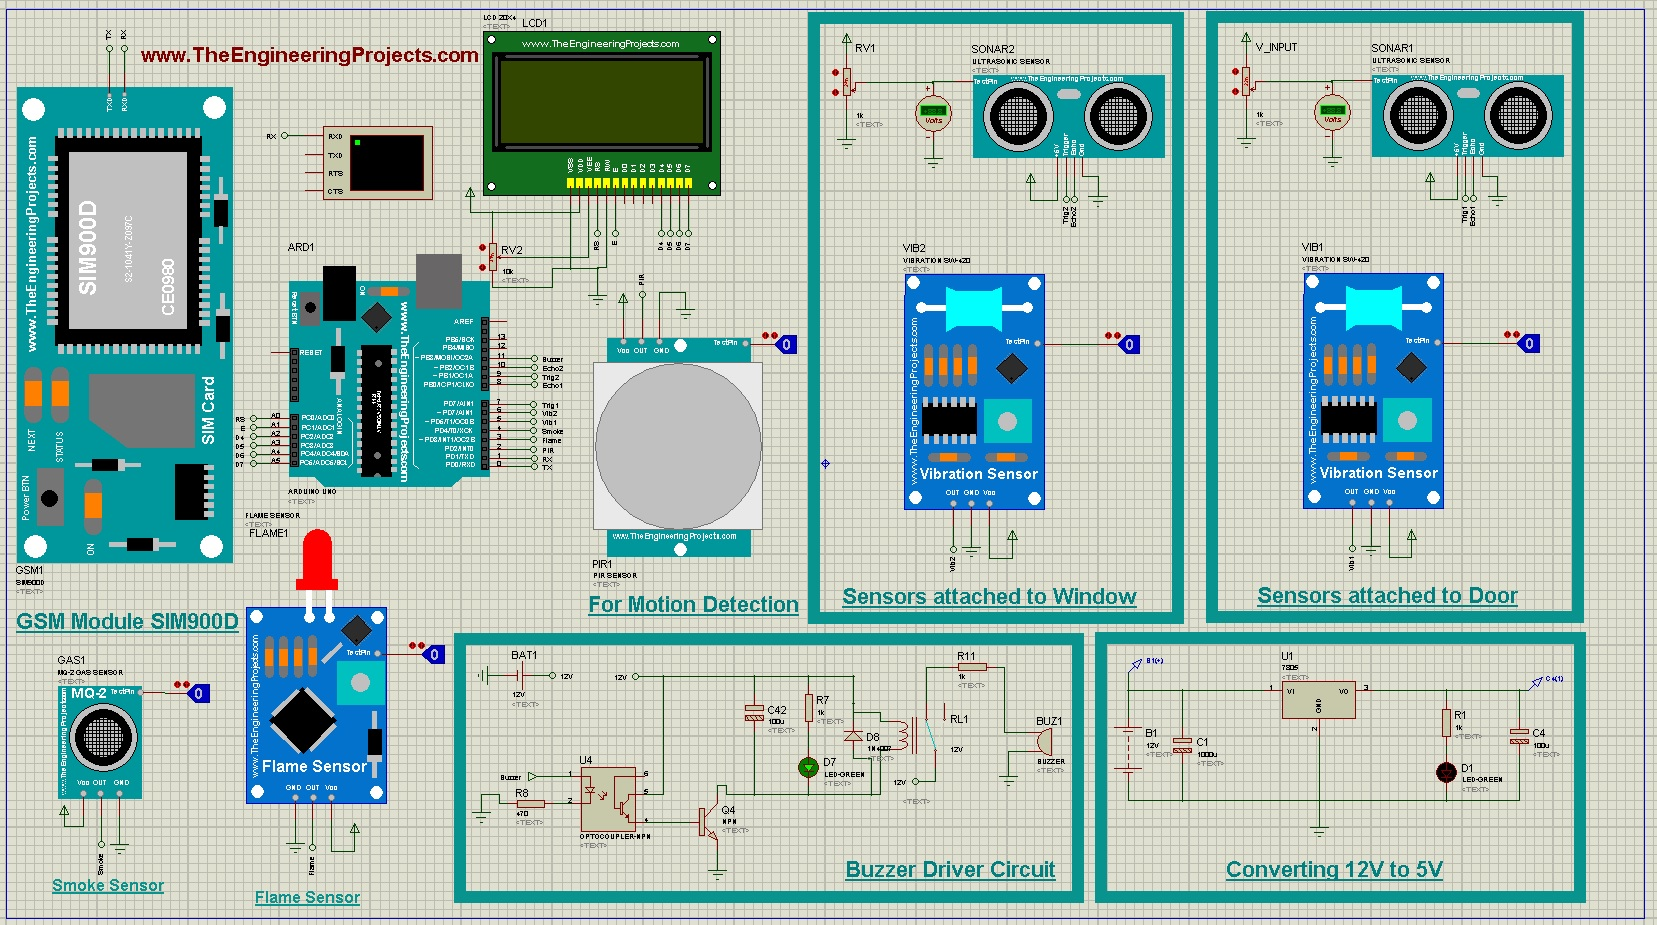 rfid based projects This rfid based access control circuit is built around arduino uno board, rfid reader module, solenoid lock and a few other components.